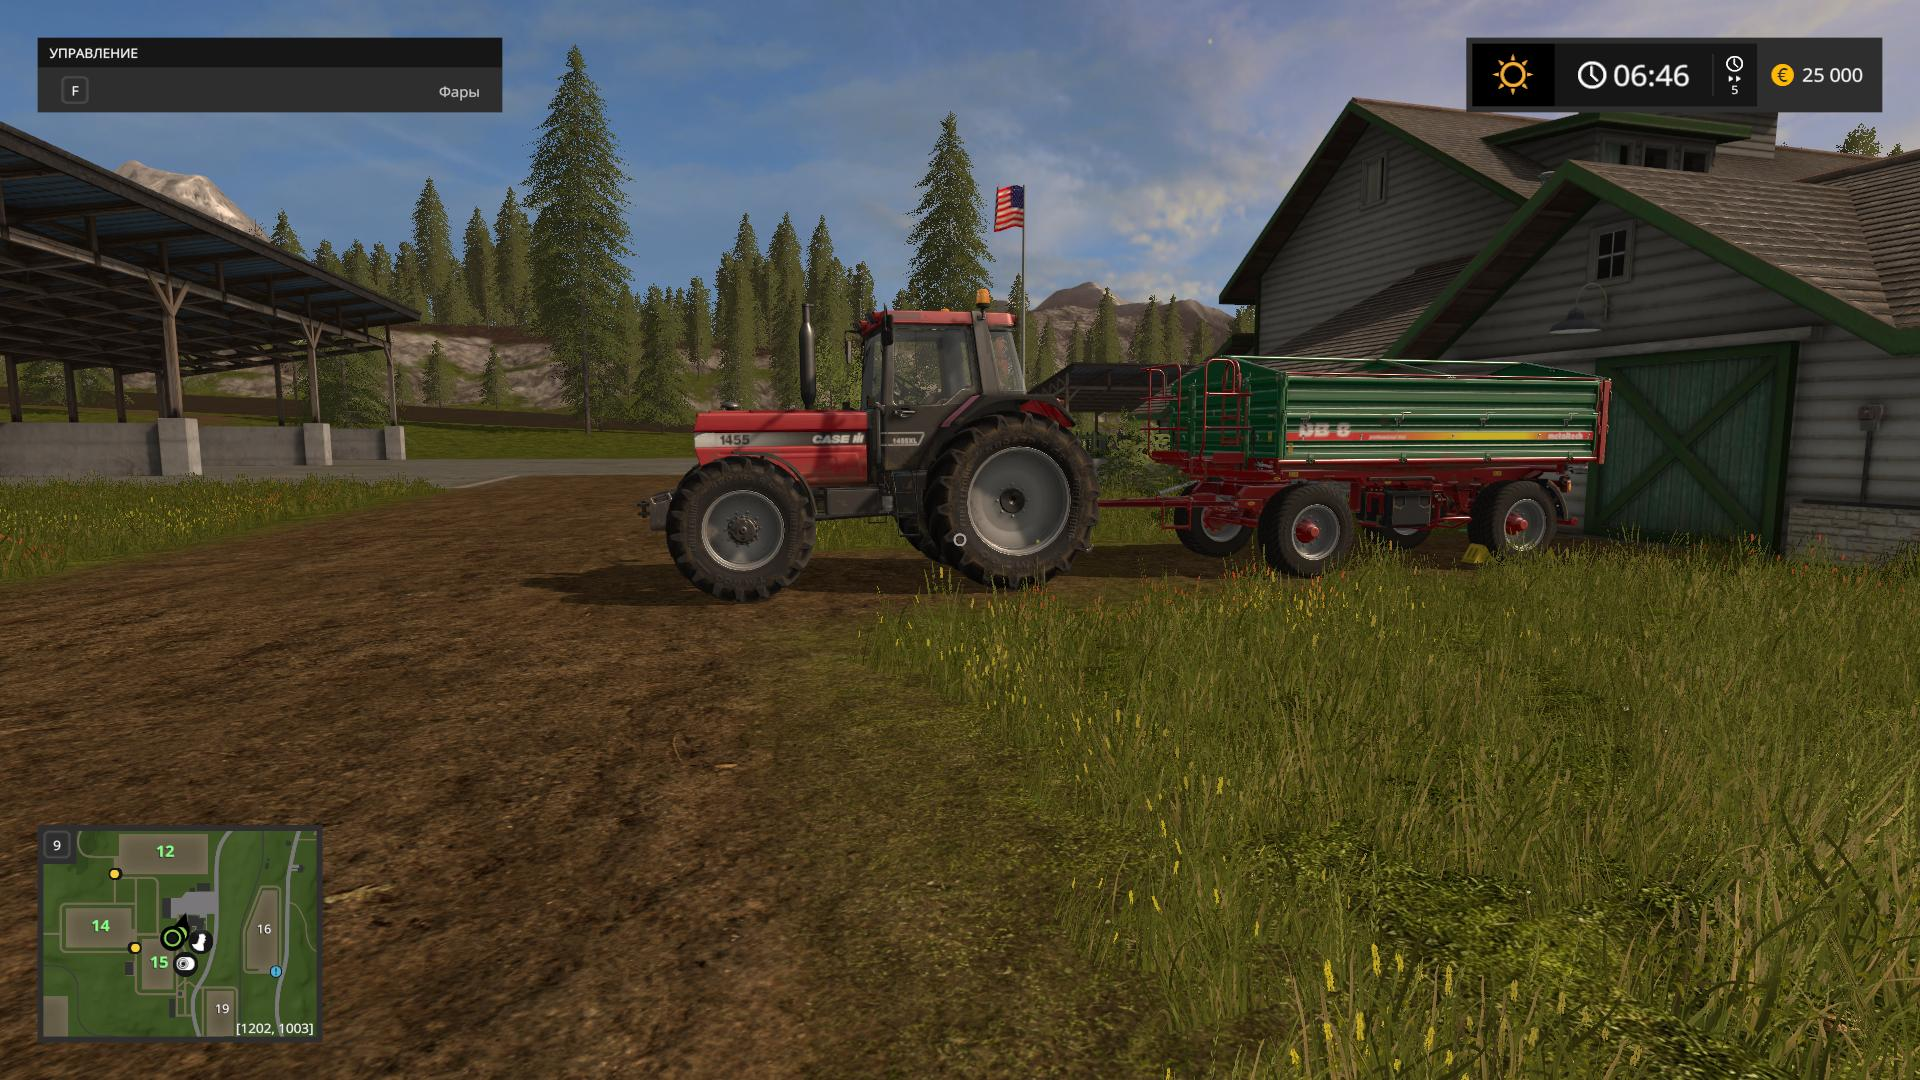 Farming Simulator 17 [v 1.3.3 + 2 DLC] (2016) PC | RePack by Other s - Скриншот 3